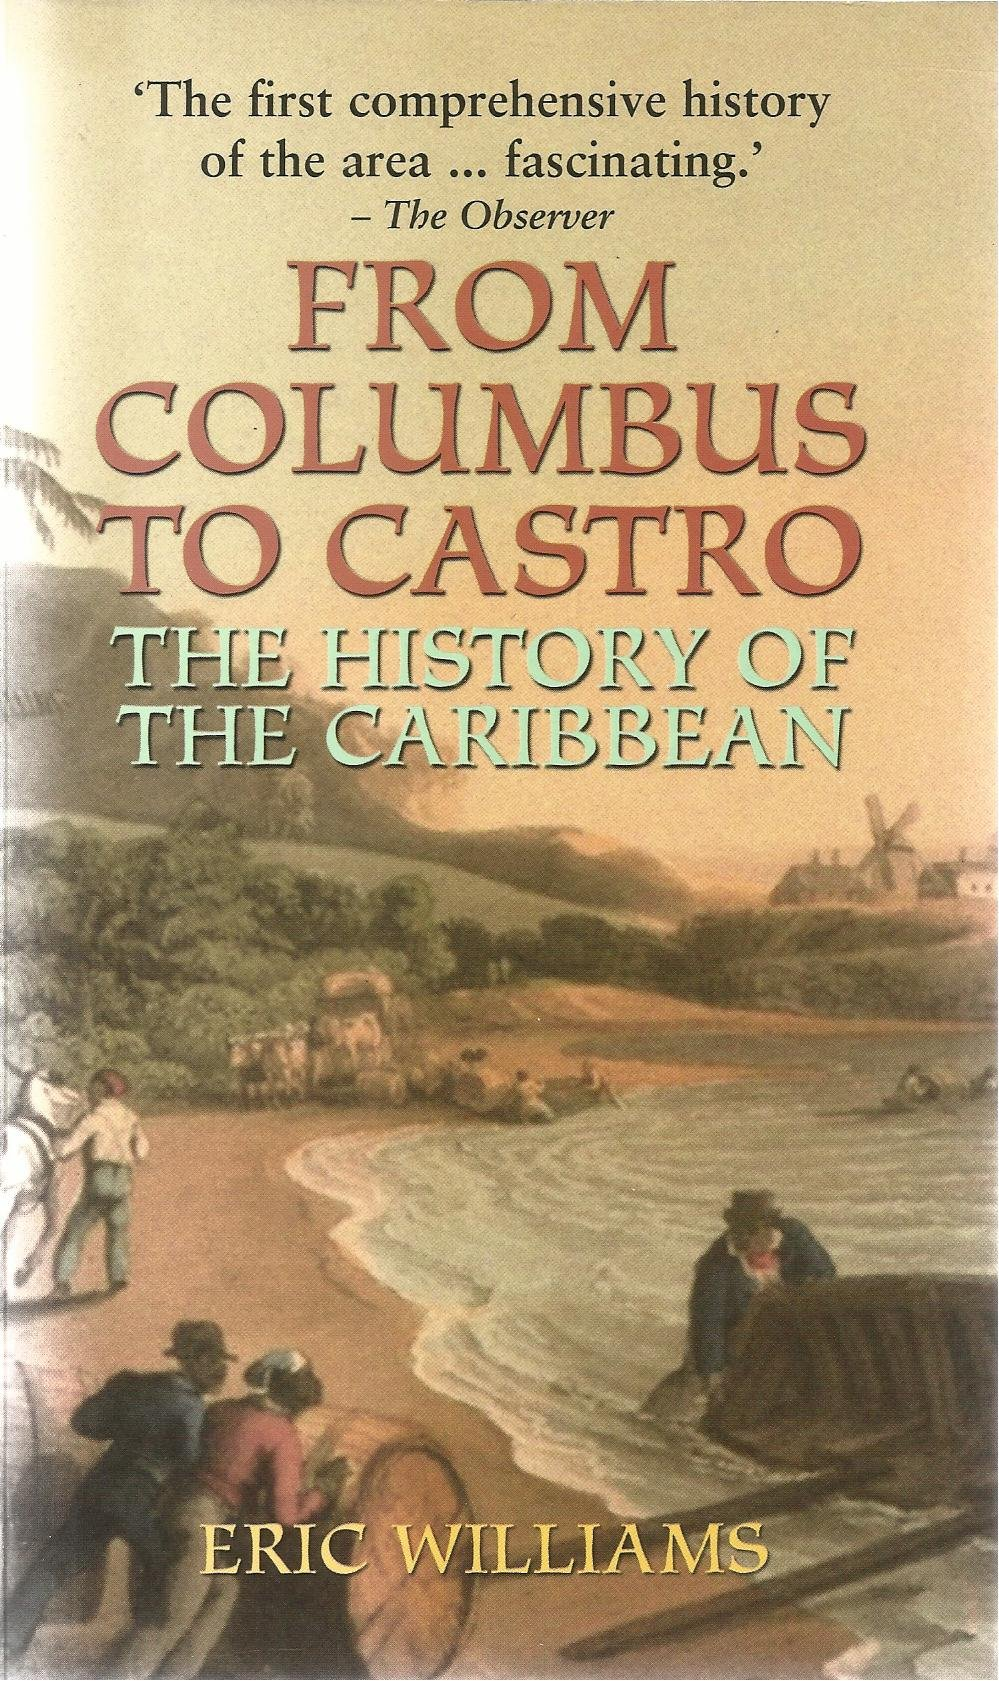 Recommended Book To Read: From Columbus to Castro The History of the Caribbean